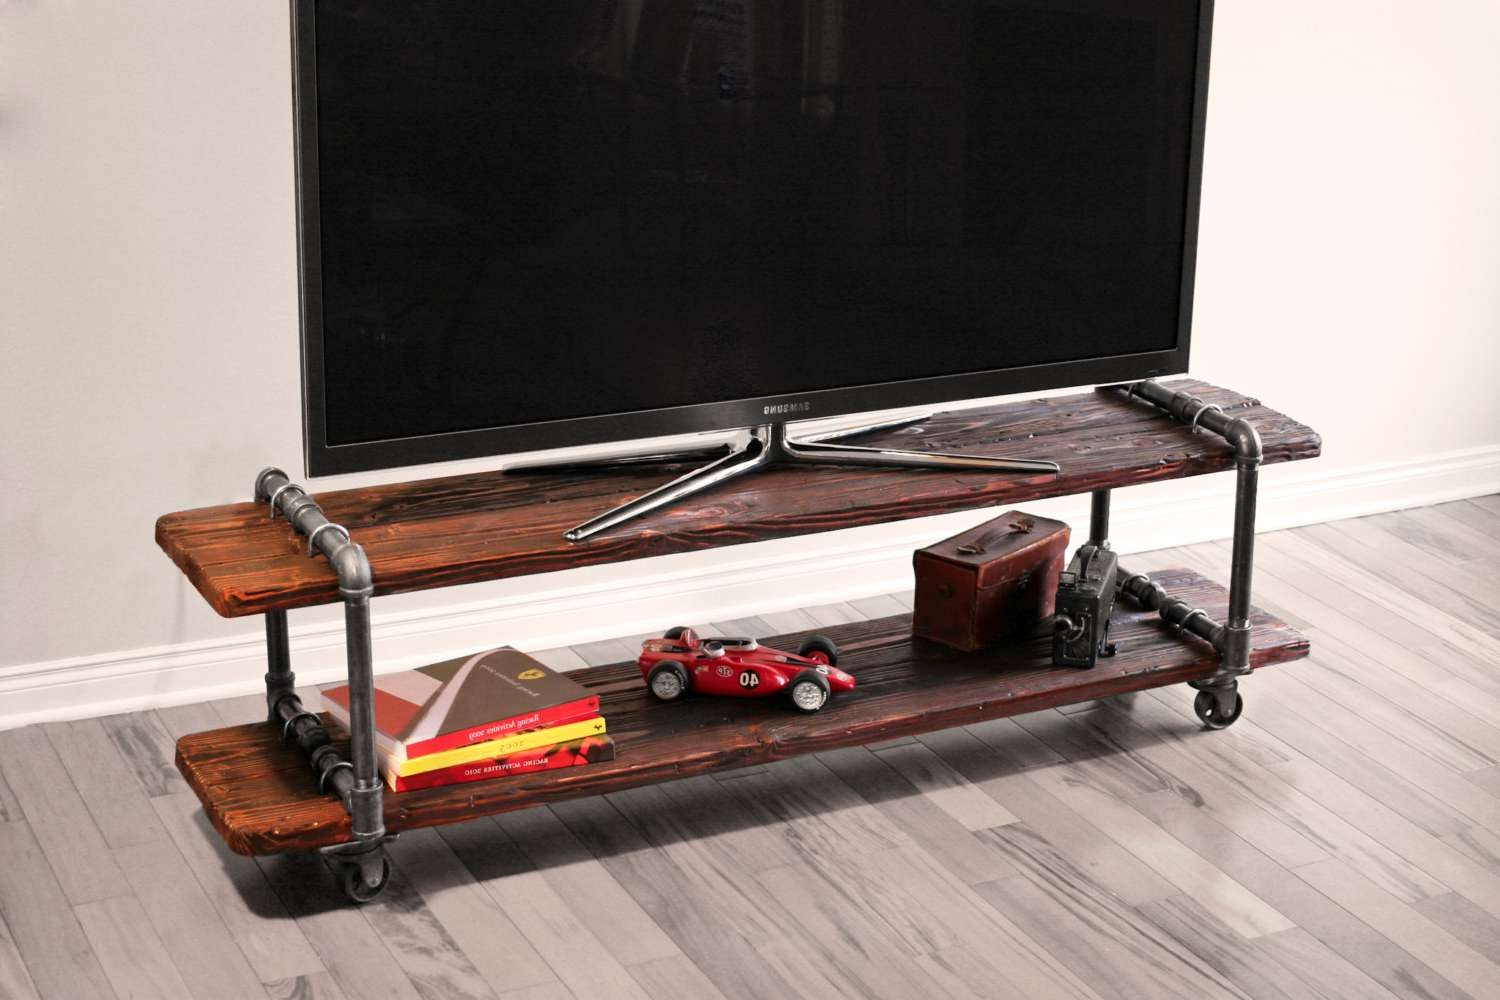 Cool Diy Portable Industrial Tv Stands Made From Pipe And Intended For Industrial Tv Cabinets (View 10 of 20)